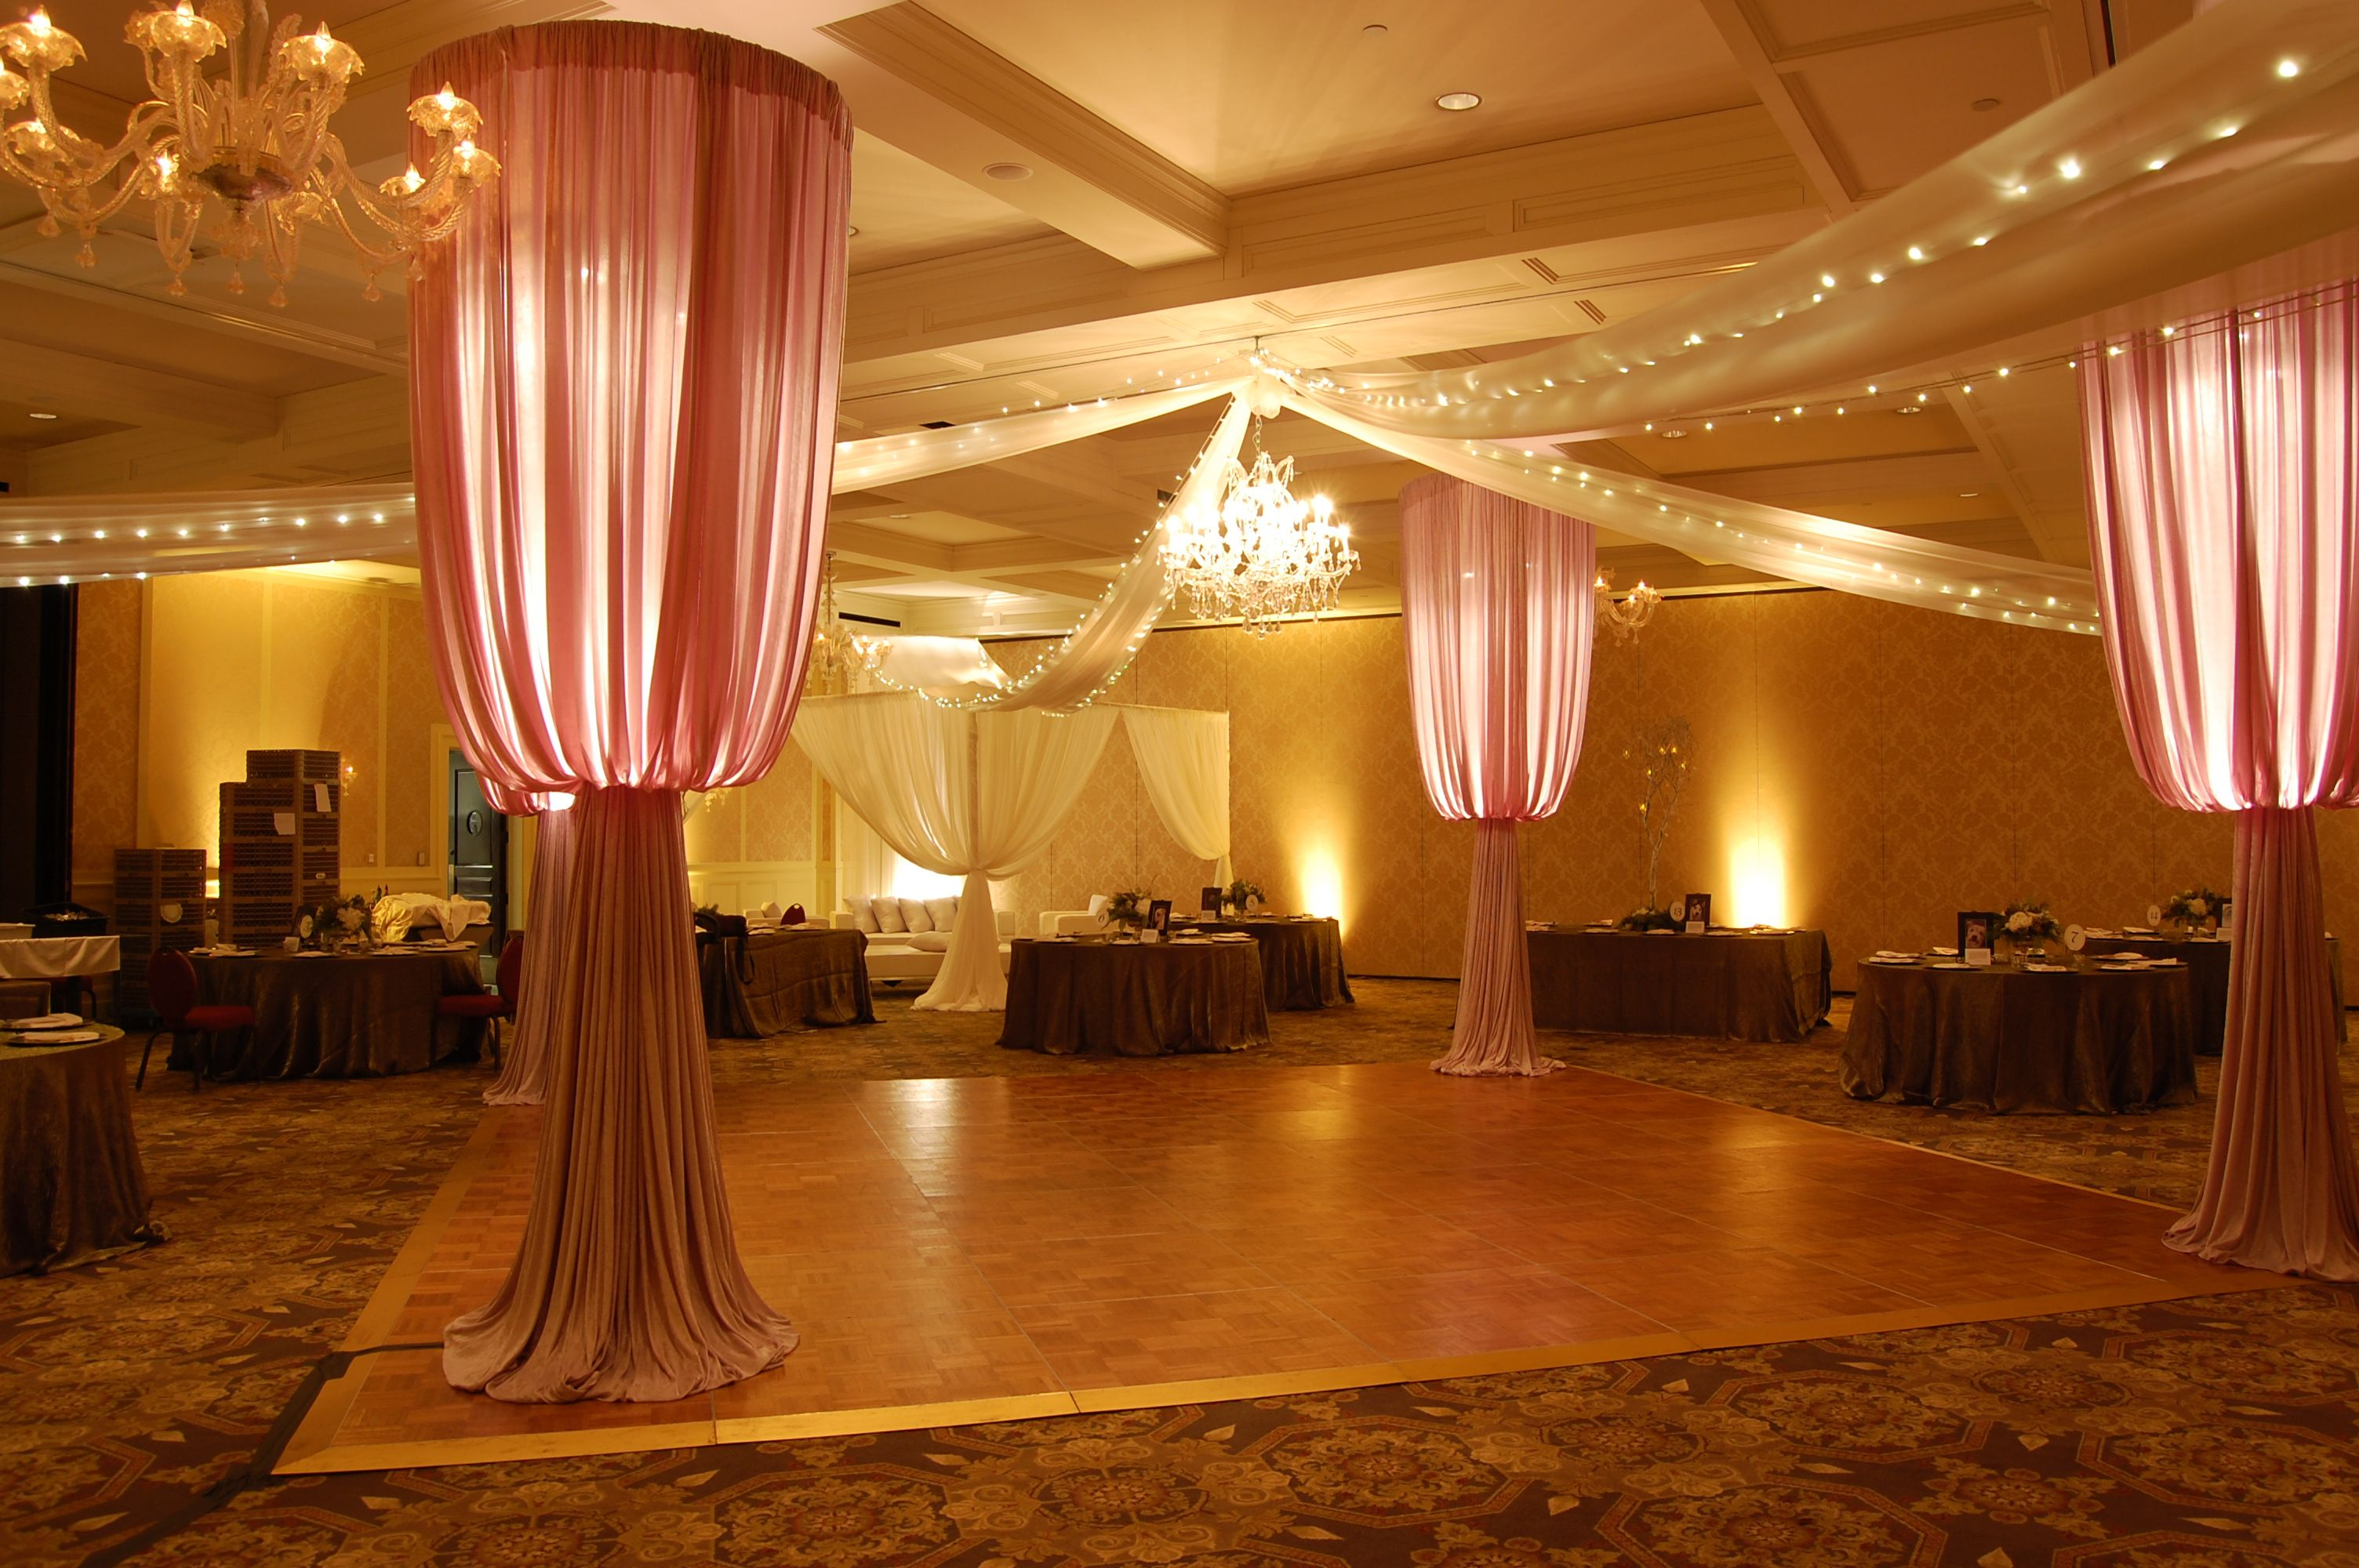 Columns ivory fabric uplighting wedding ceremony downtown double tree - Custom Lighted Fabric Columns